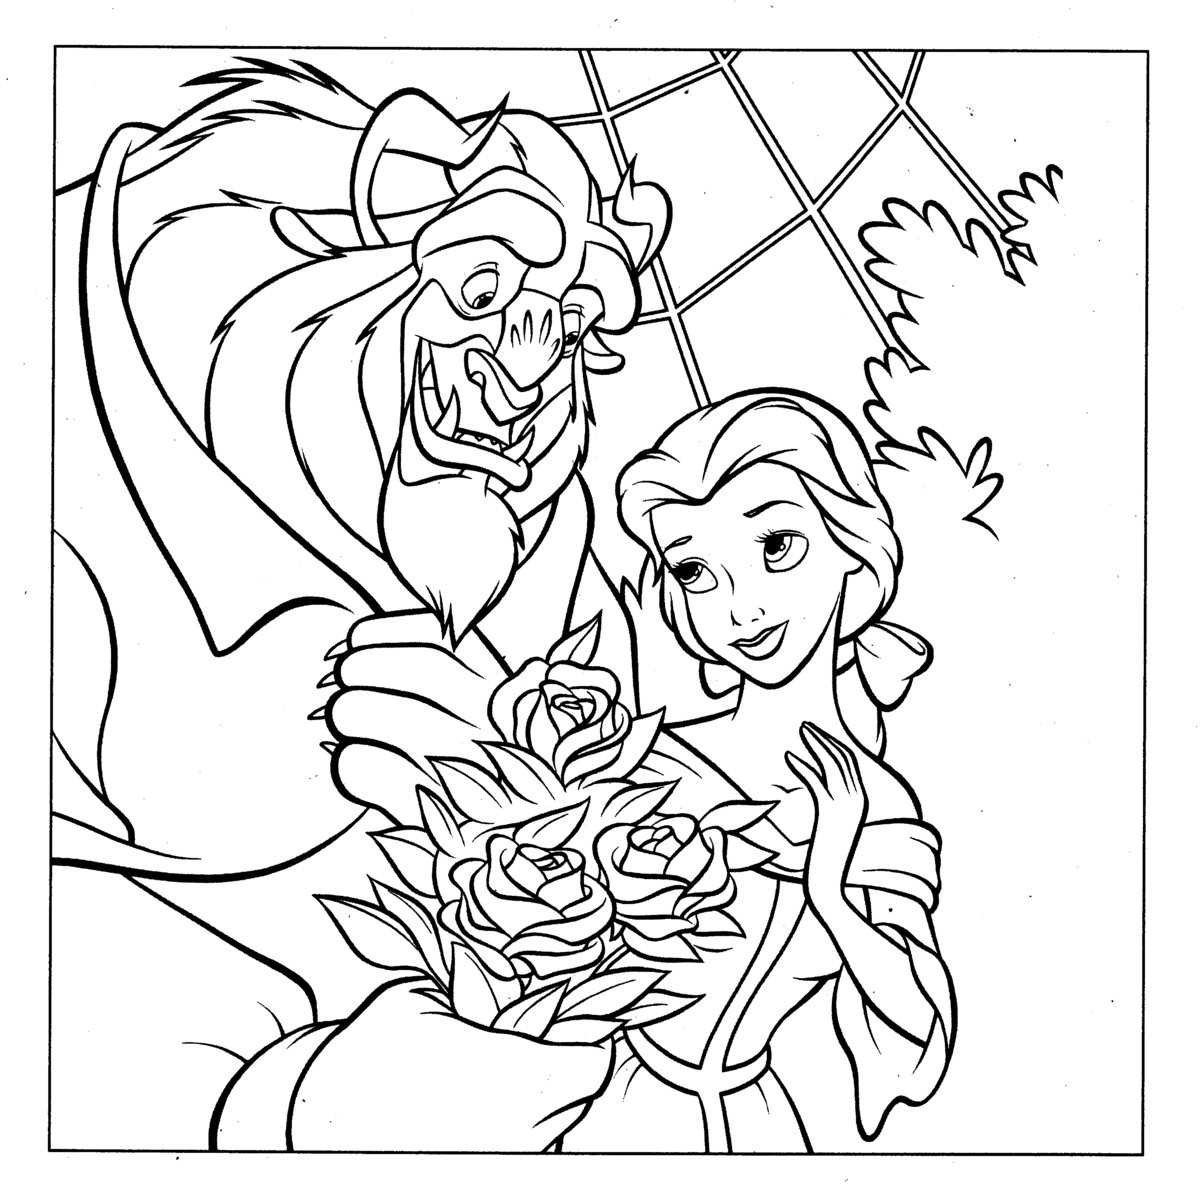 Coloring Pages Disney Princess Free Villains For